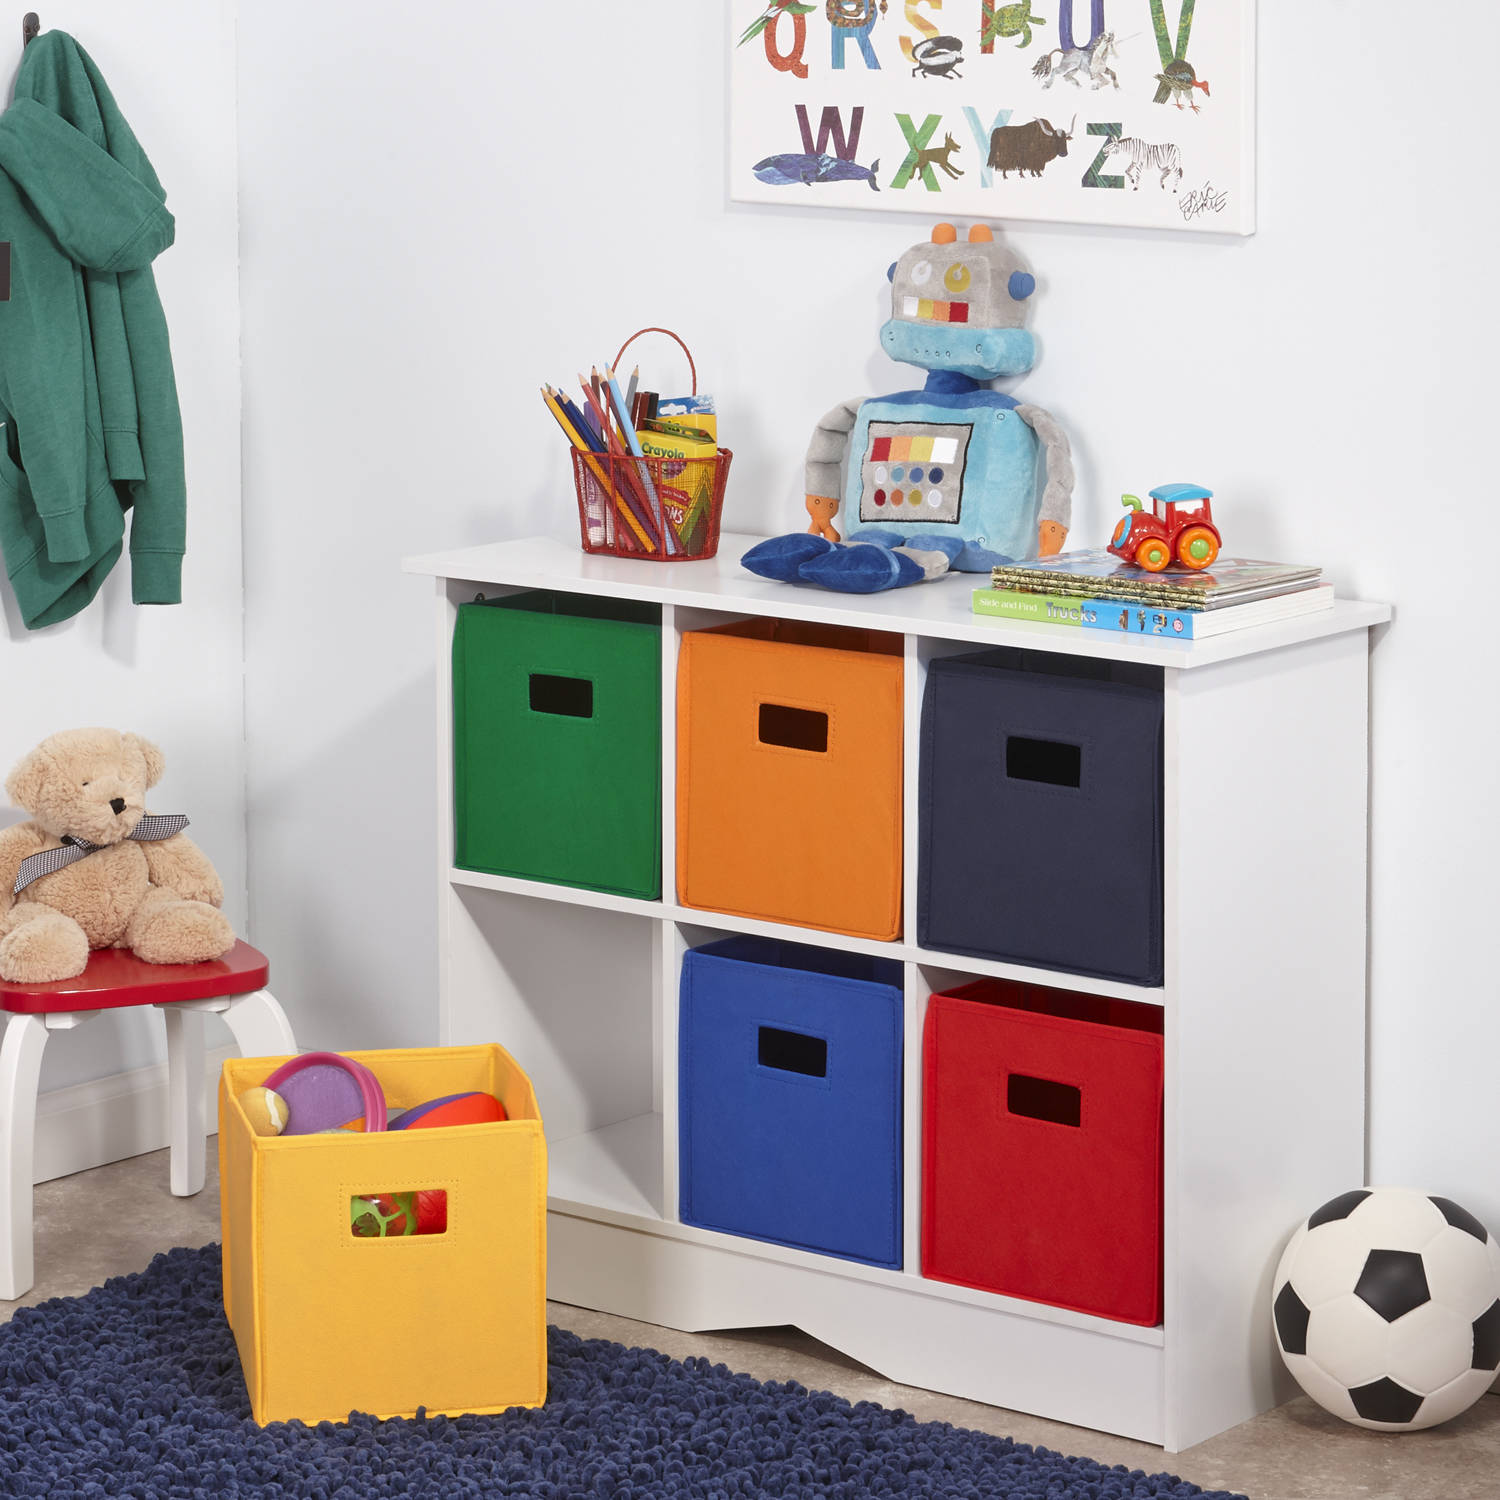 New Kids Playroom Nursery Storage Cabinet with 6 Bins, White and Primary  Tones